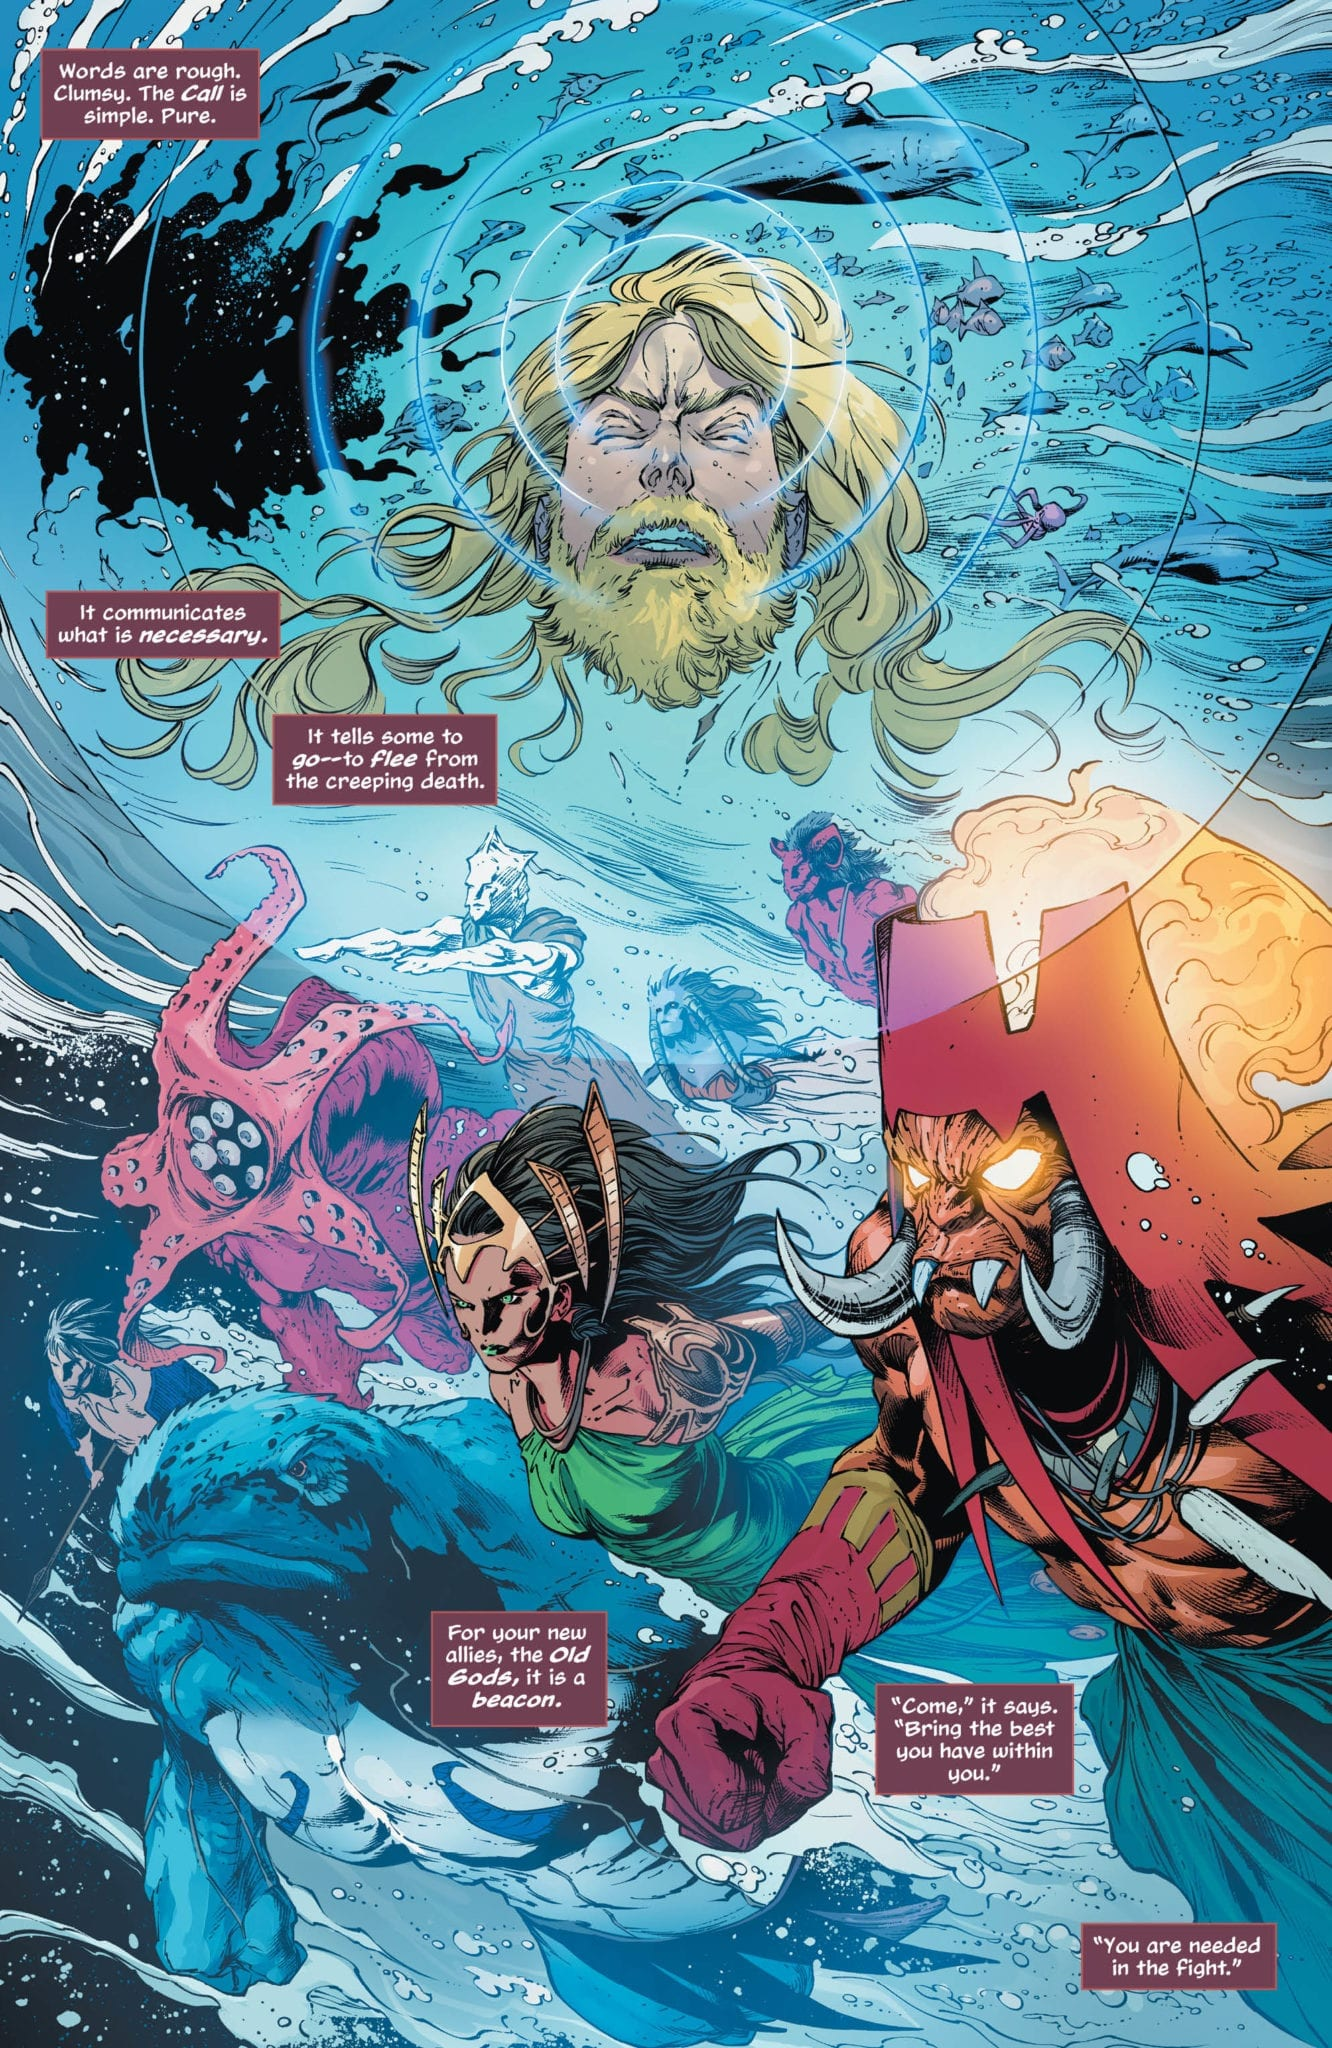 Aquaman sends out the Call